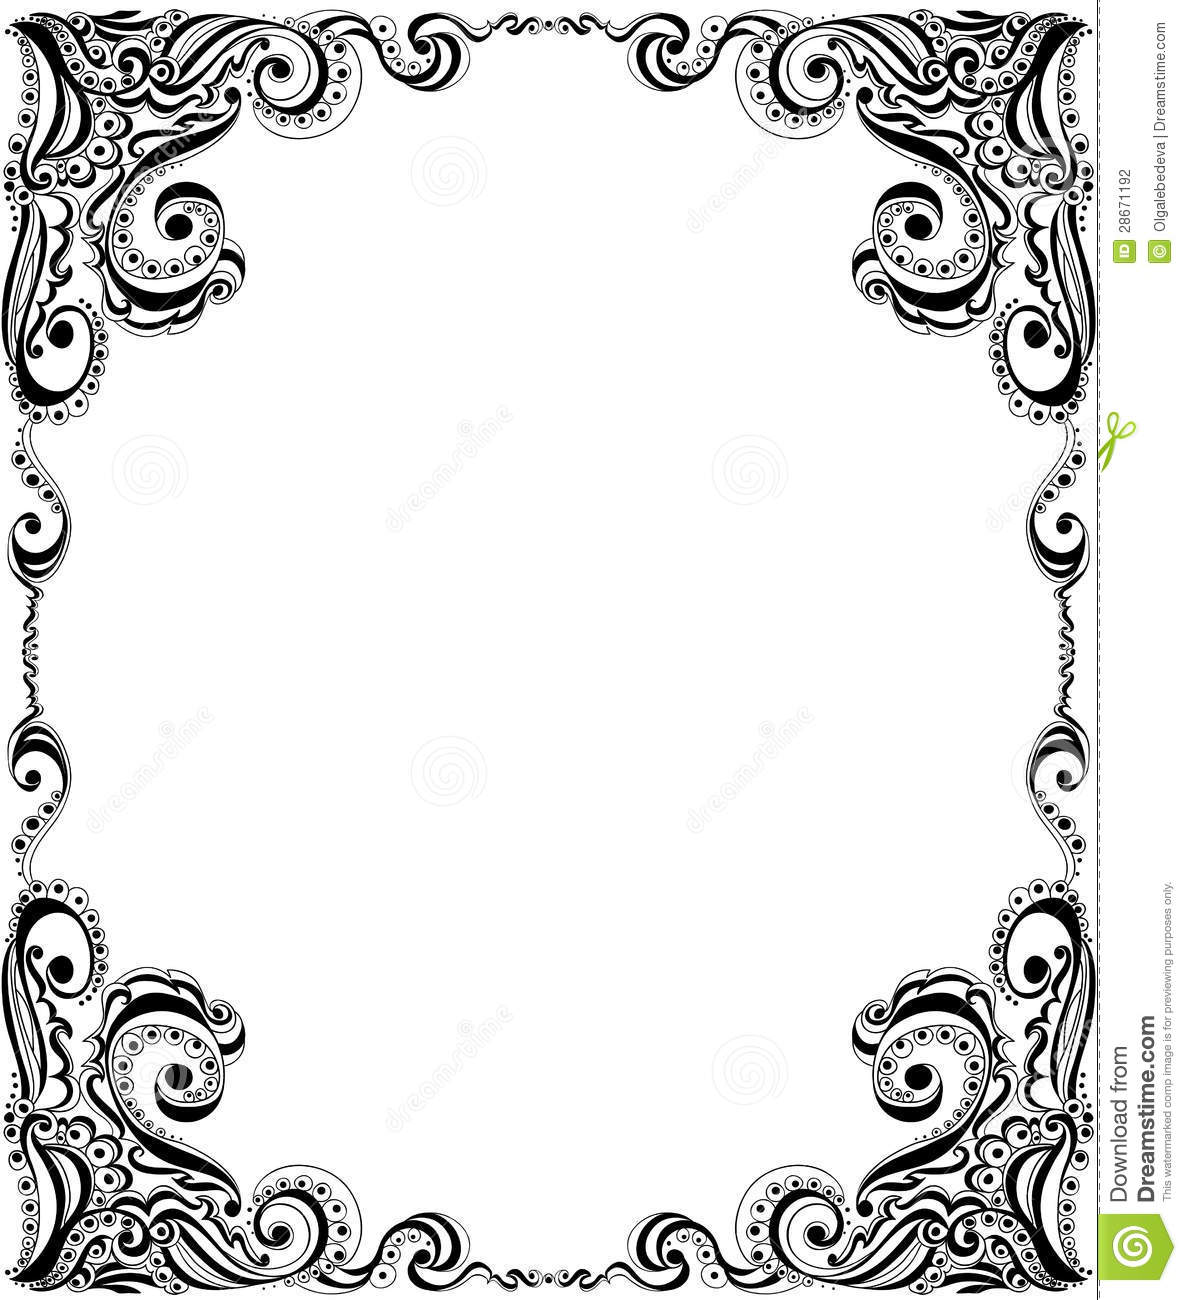 Template Frame Design For Card Floral Pattern Stock Photography mATskl6A